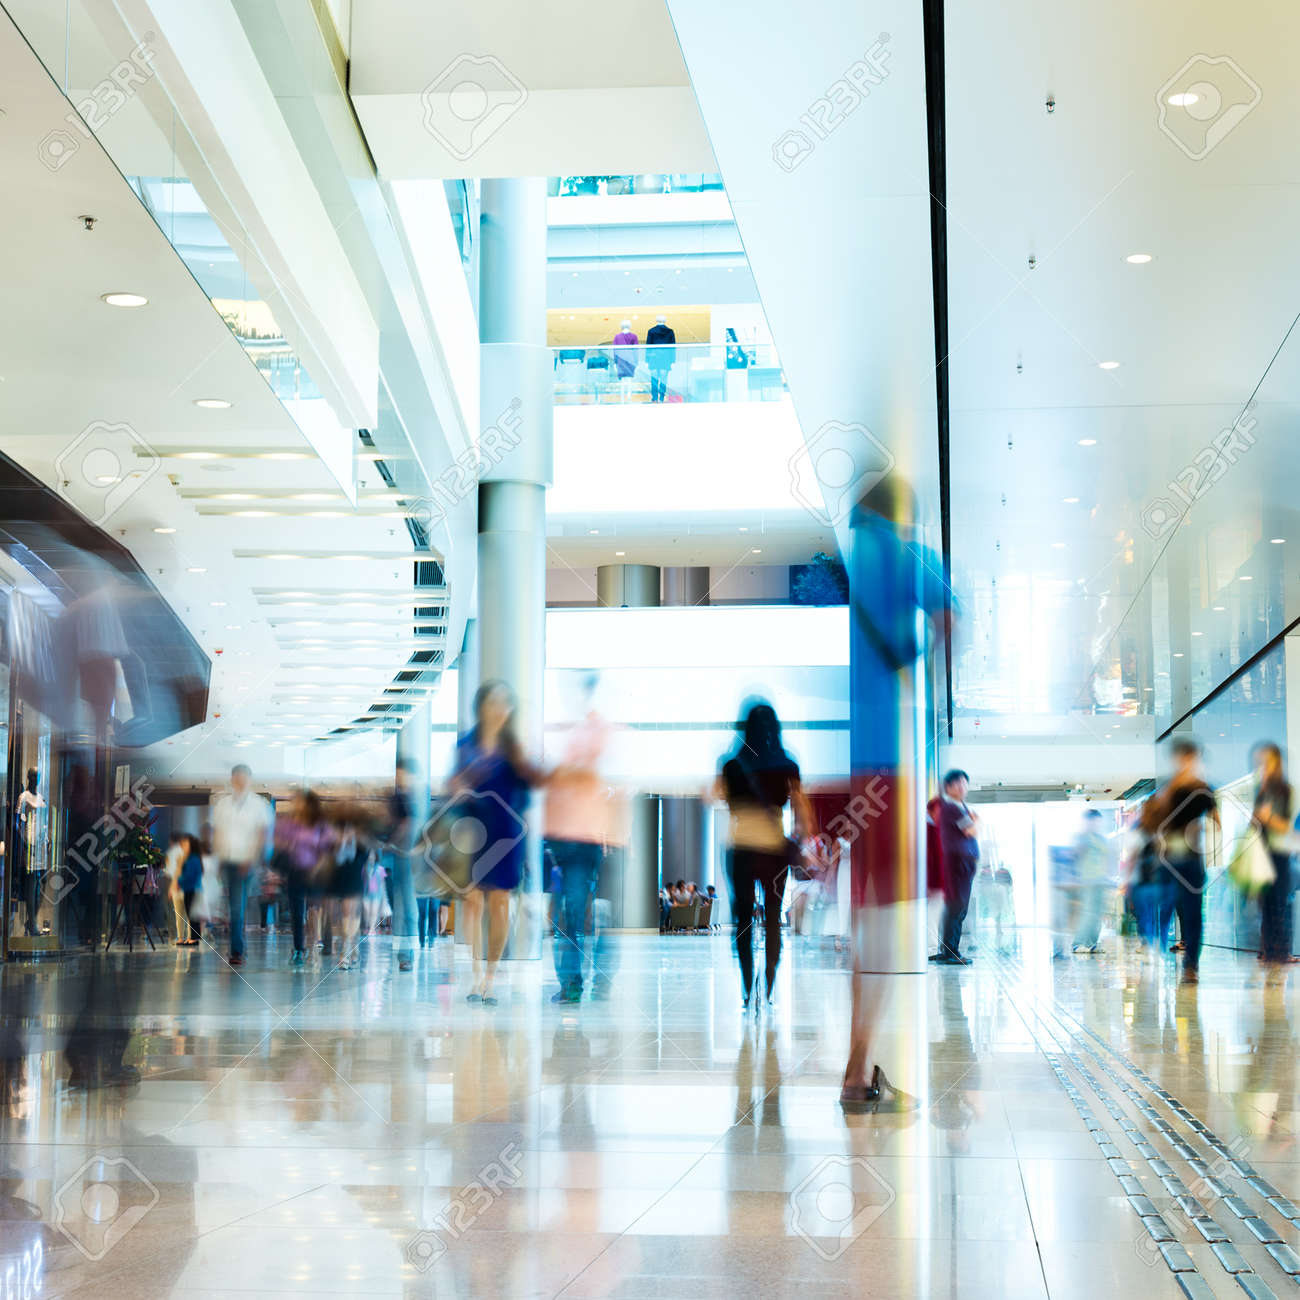 People rushing in the lobby. motion blur Stock Photo - 35160001